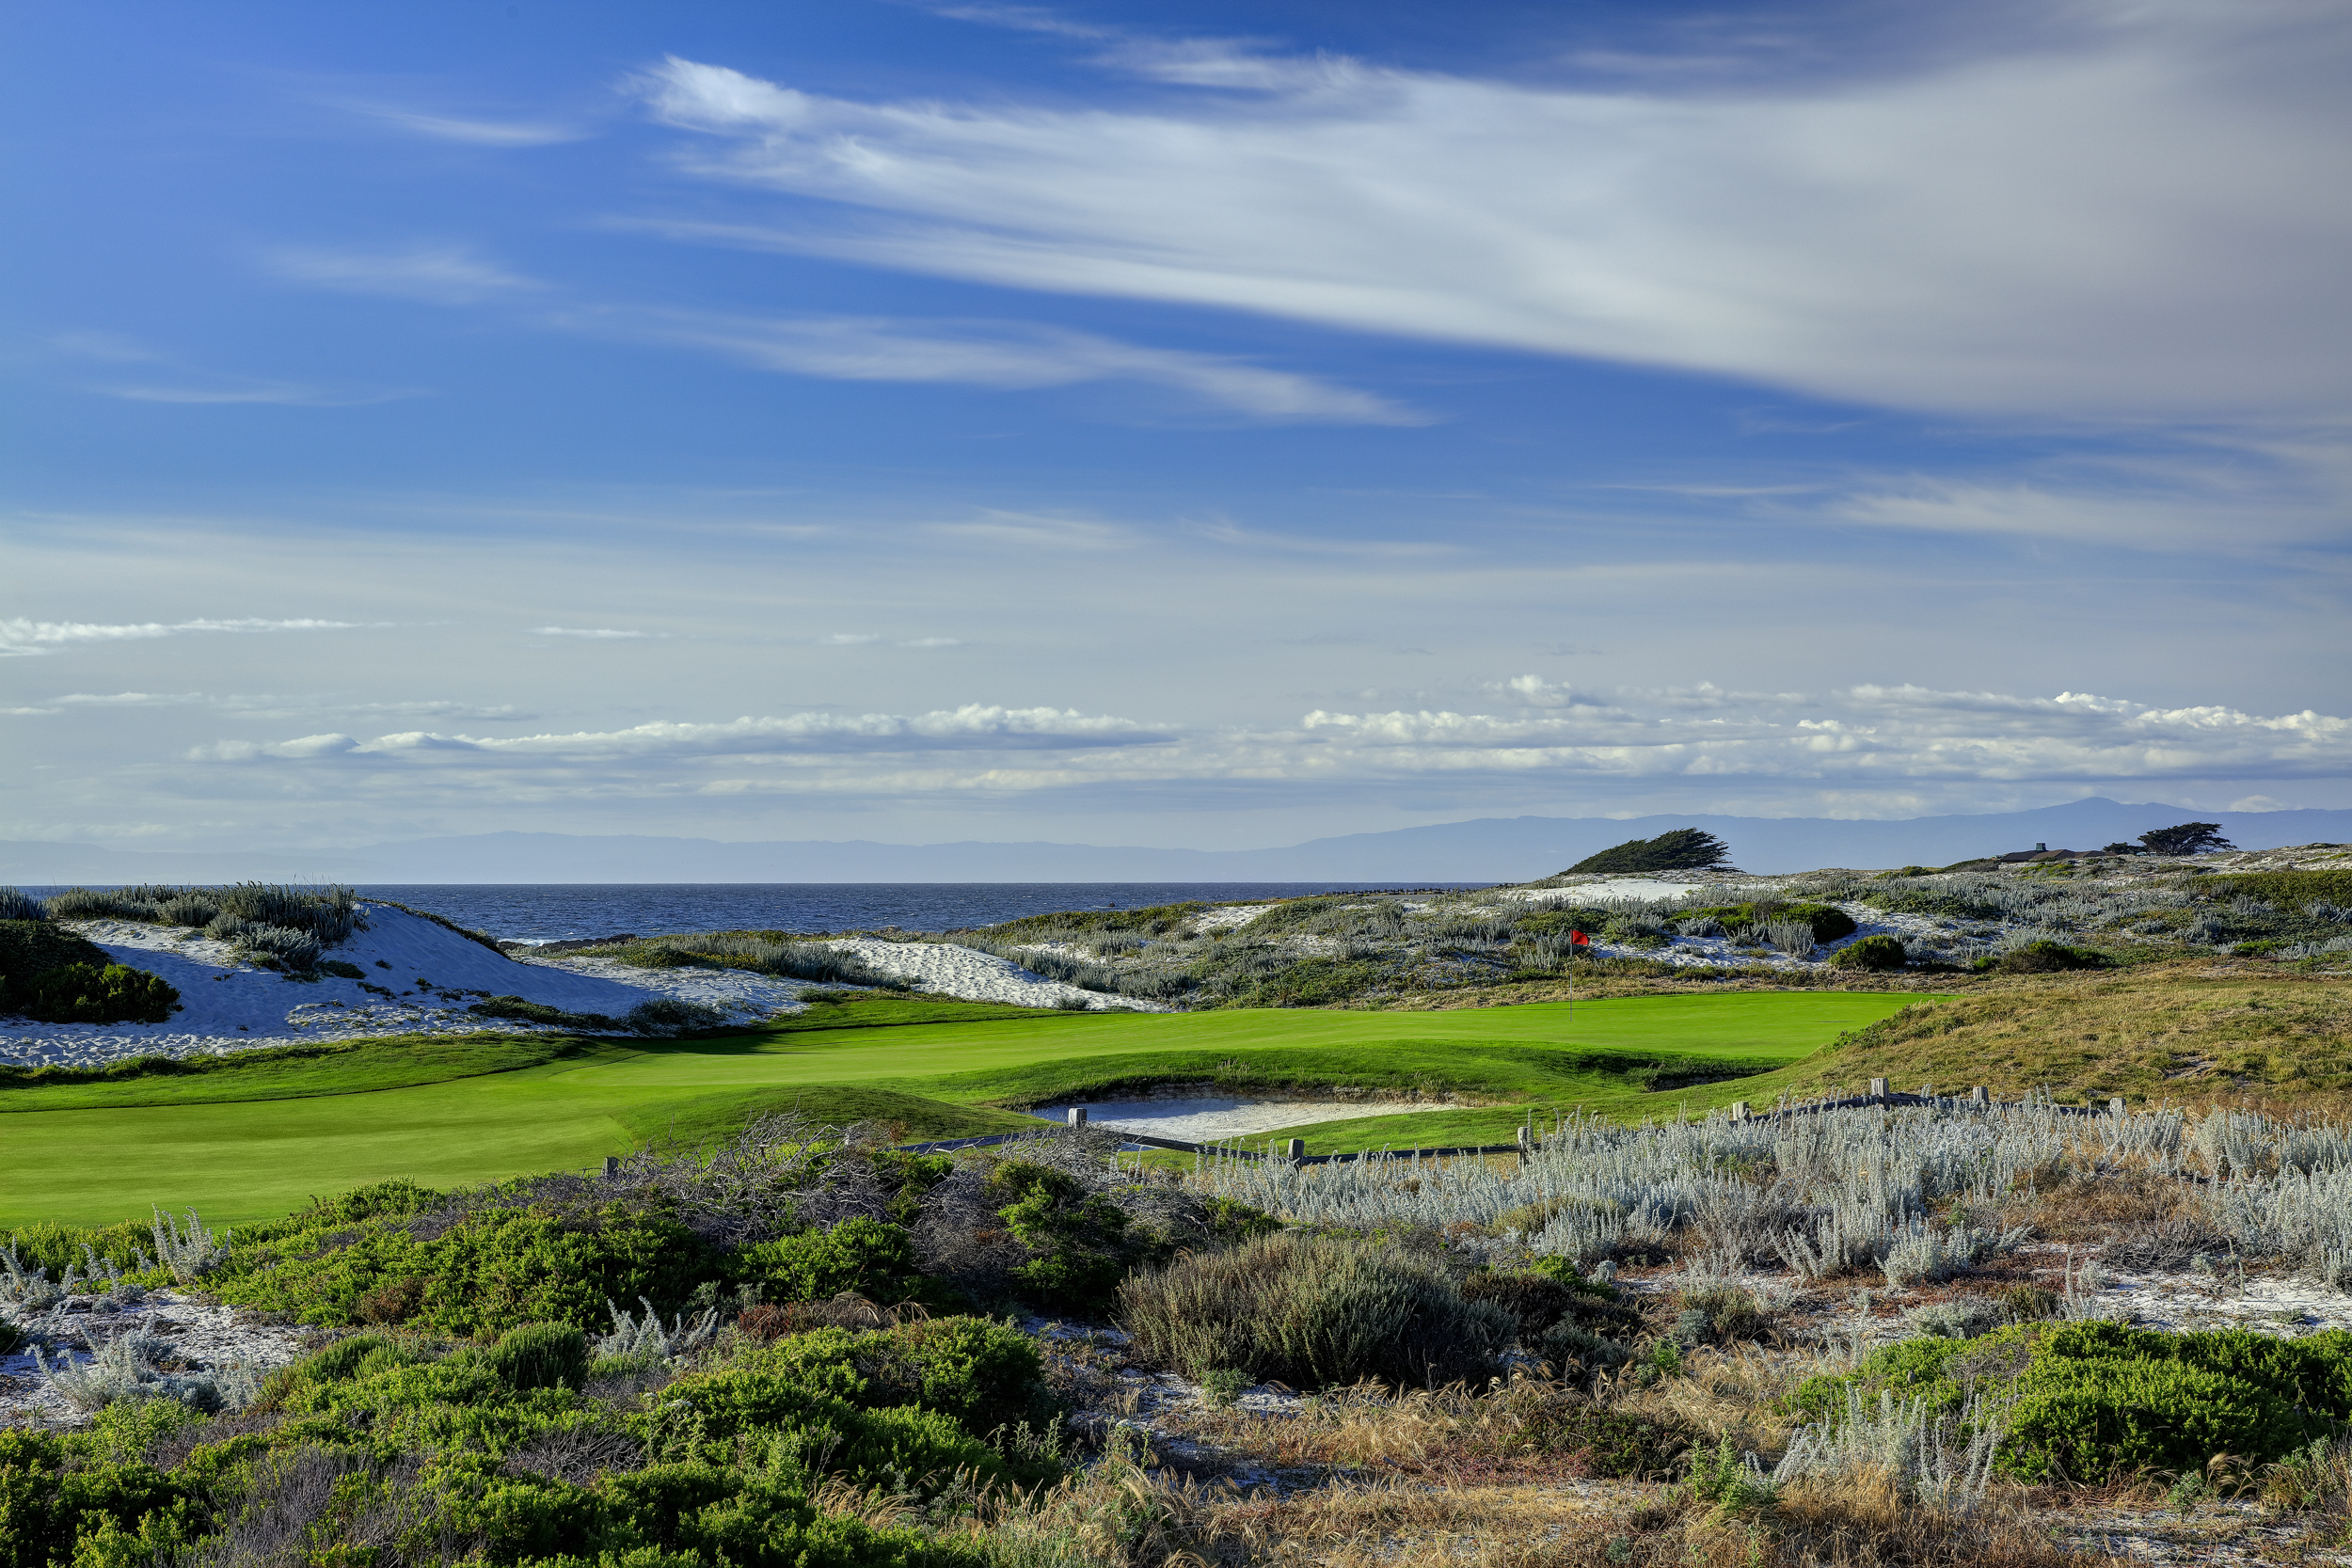 A green golf course surrounded with short shrubs and the ocean in the distance on a partly cloudy day.